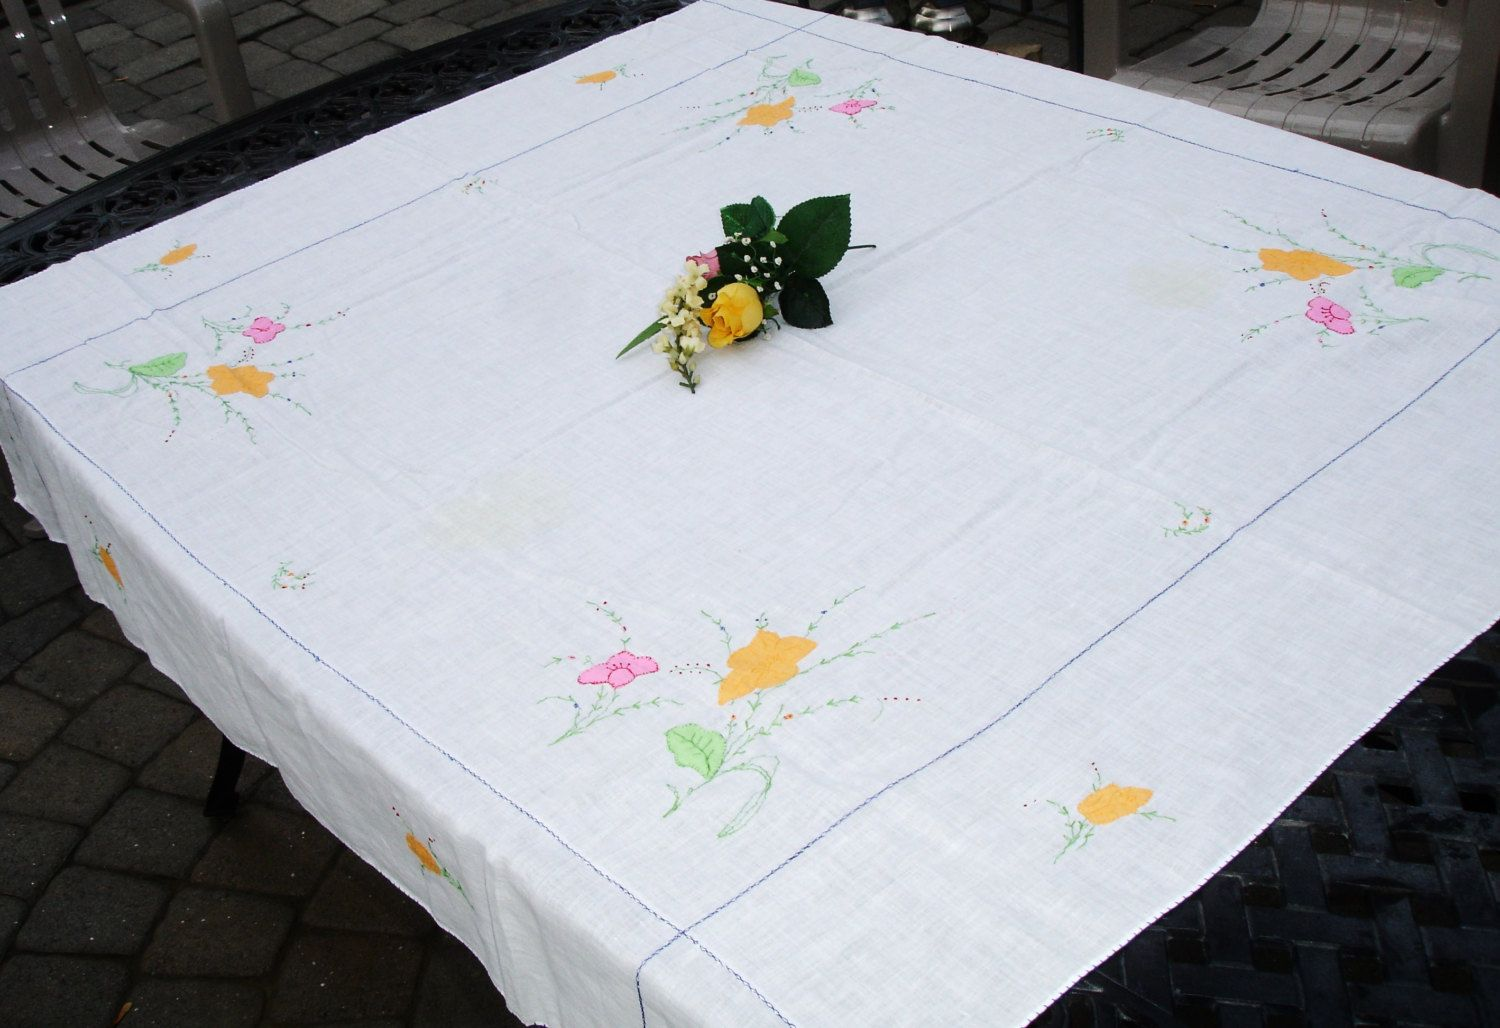 Applique designs for tablecloth - Tablecover Table Cloth Embroidery Applique Floral Detailing Vintage Tablecloth Tea Table Cloth Linen Tablecloth Cottage Chic